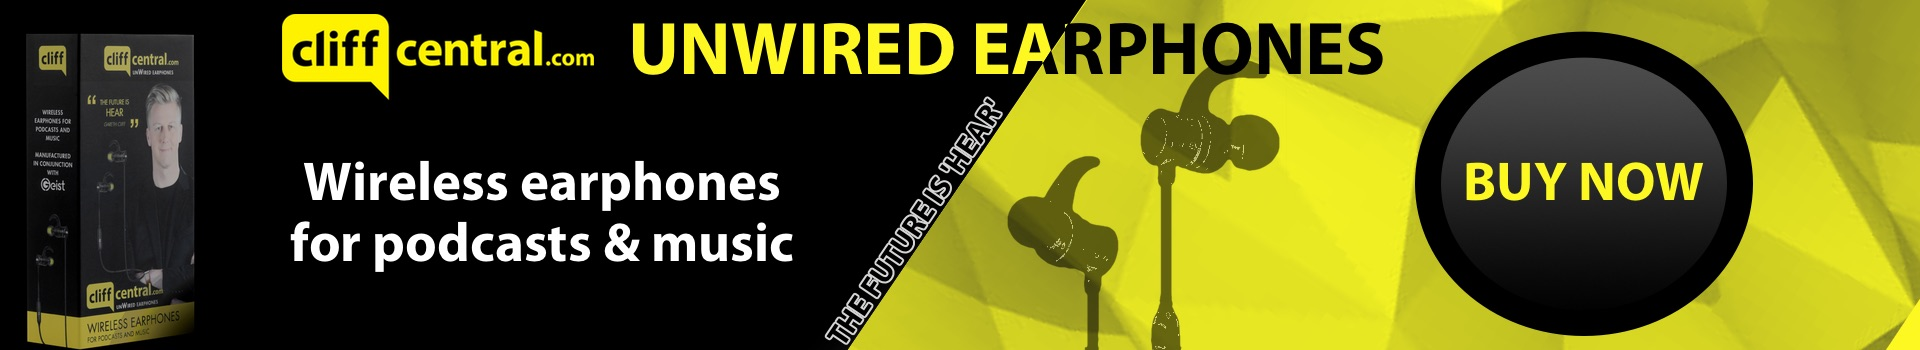 CliffCentral Unwired earphones main banner